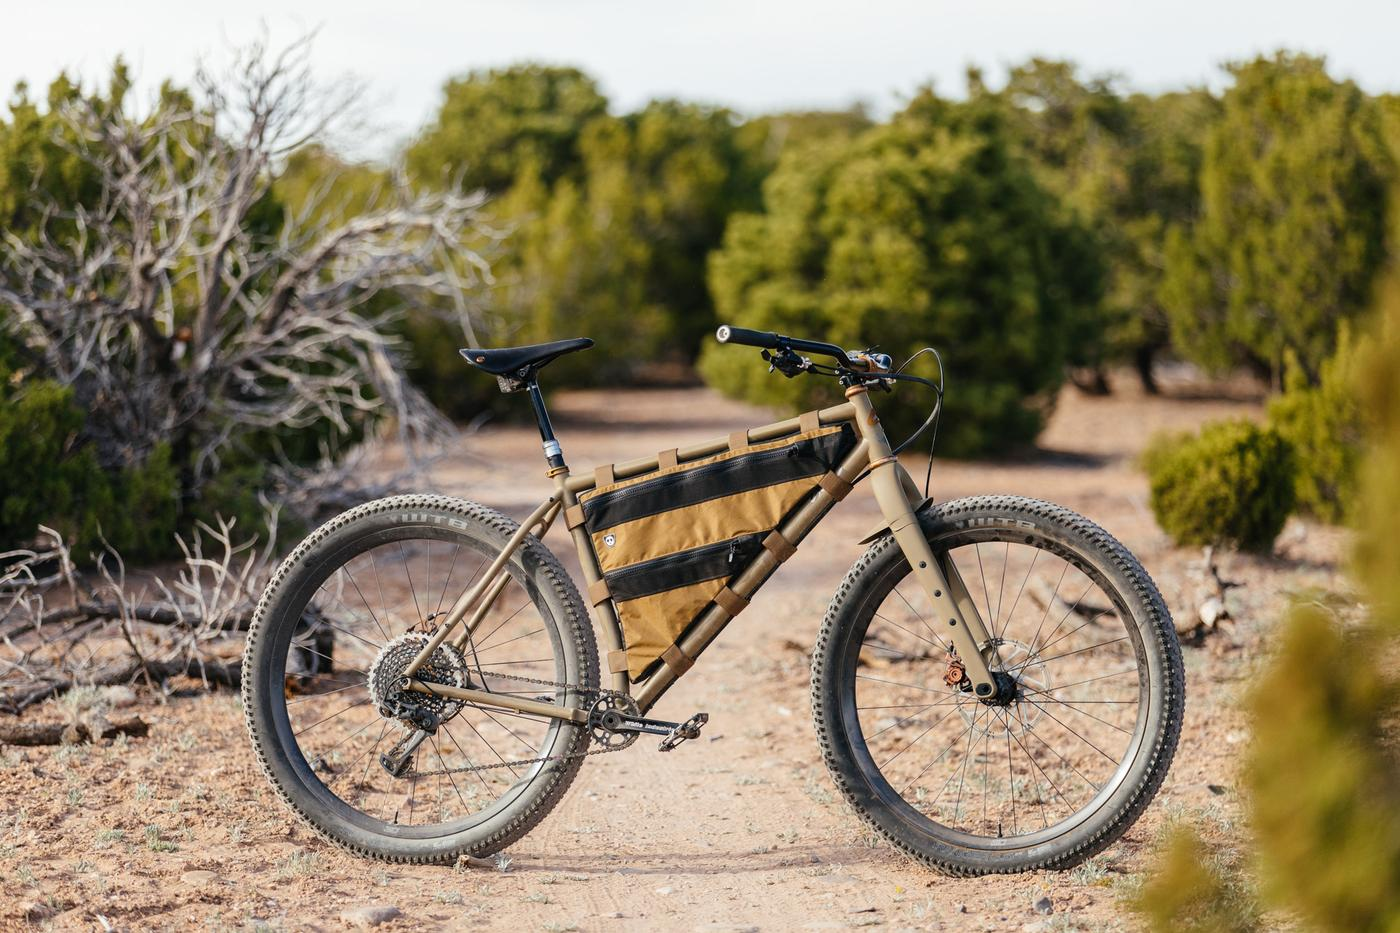 A Hands-On Look at ENVE's New Bikepacking-Ready Boost Mountain Fork